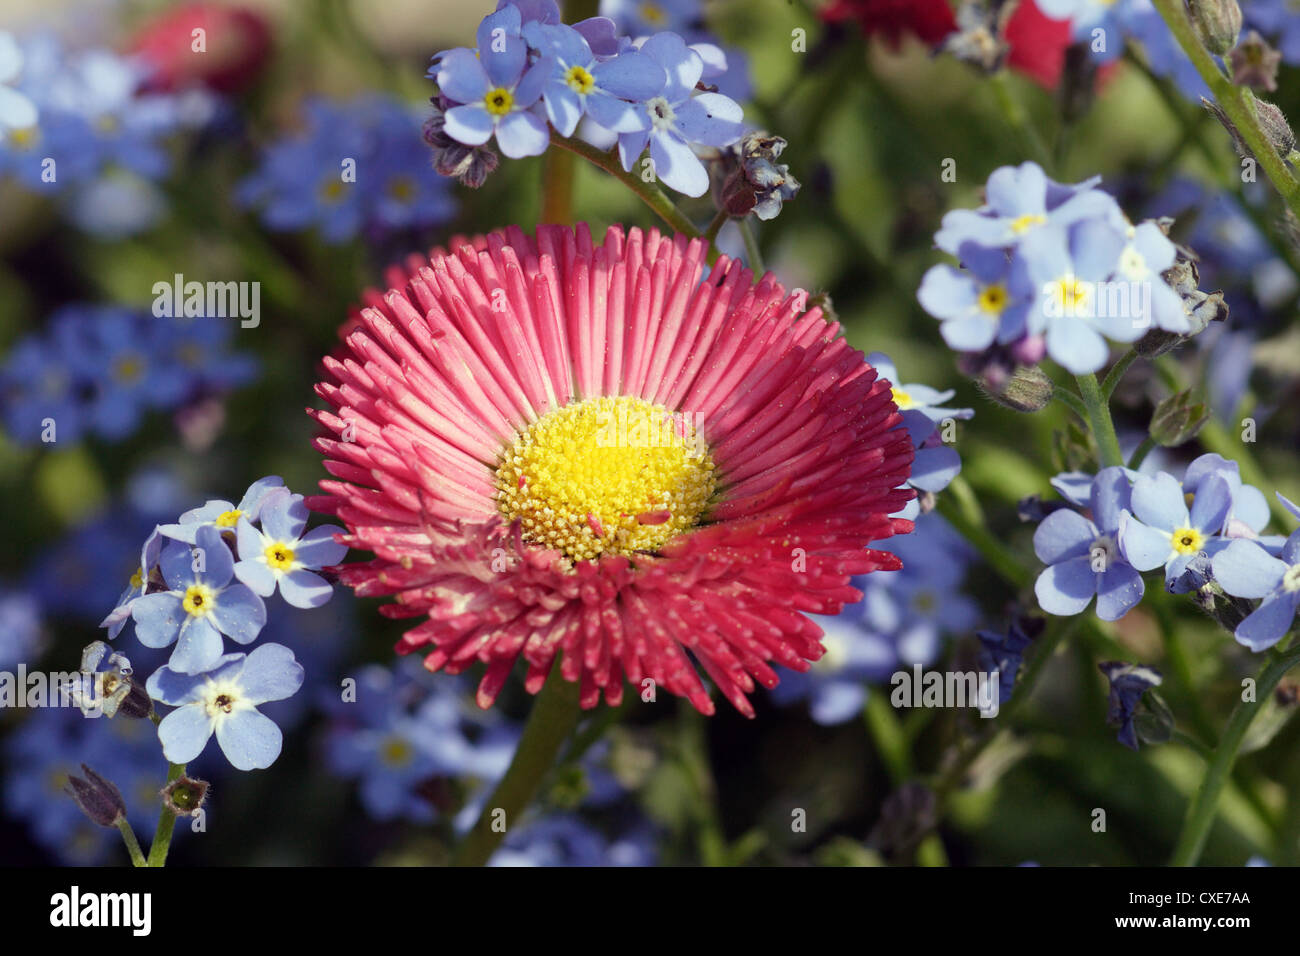 Leipzig, a red blossom in the midst of Myosotis - Stock Image